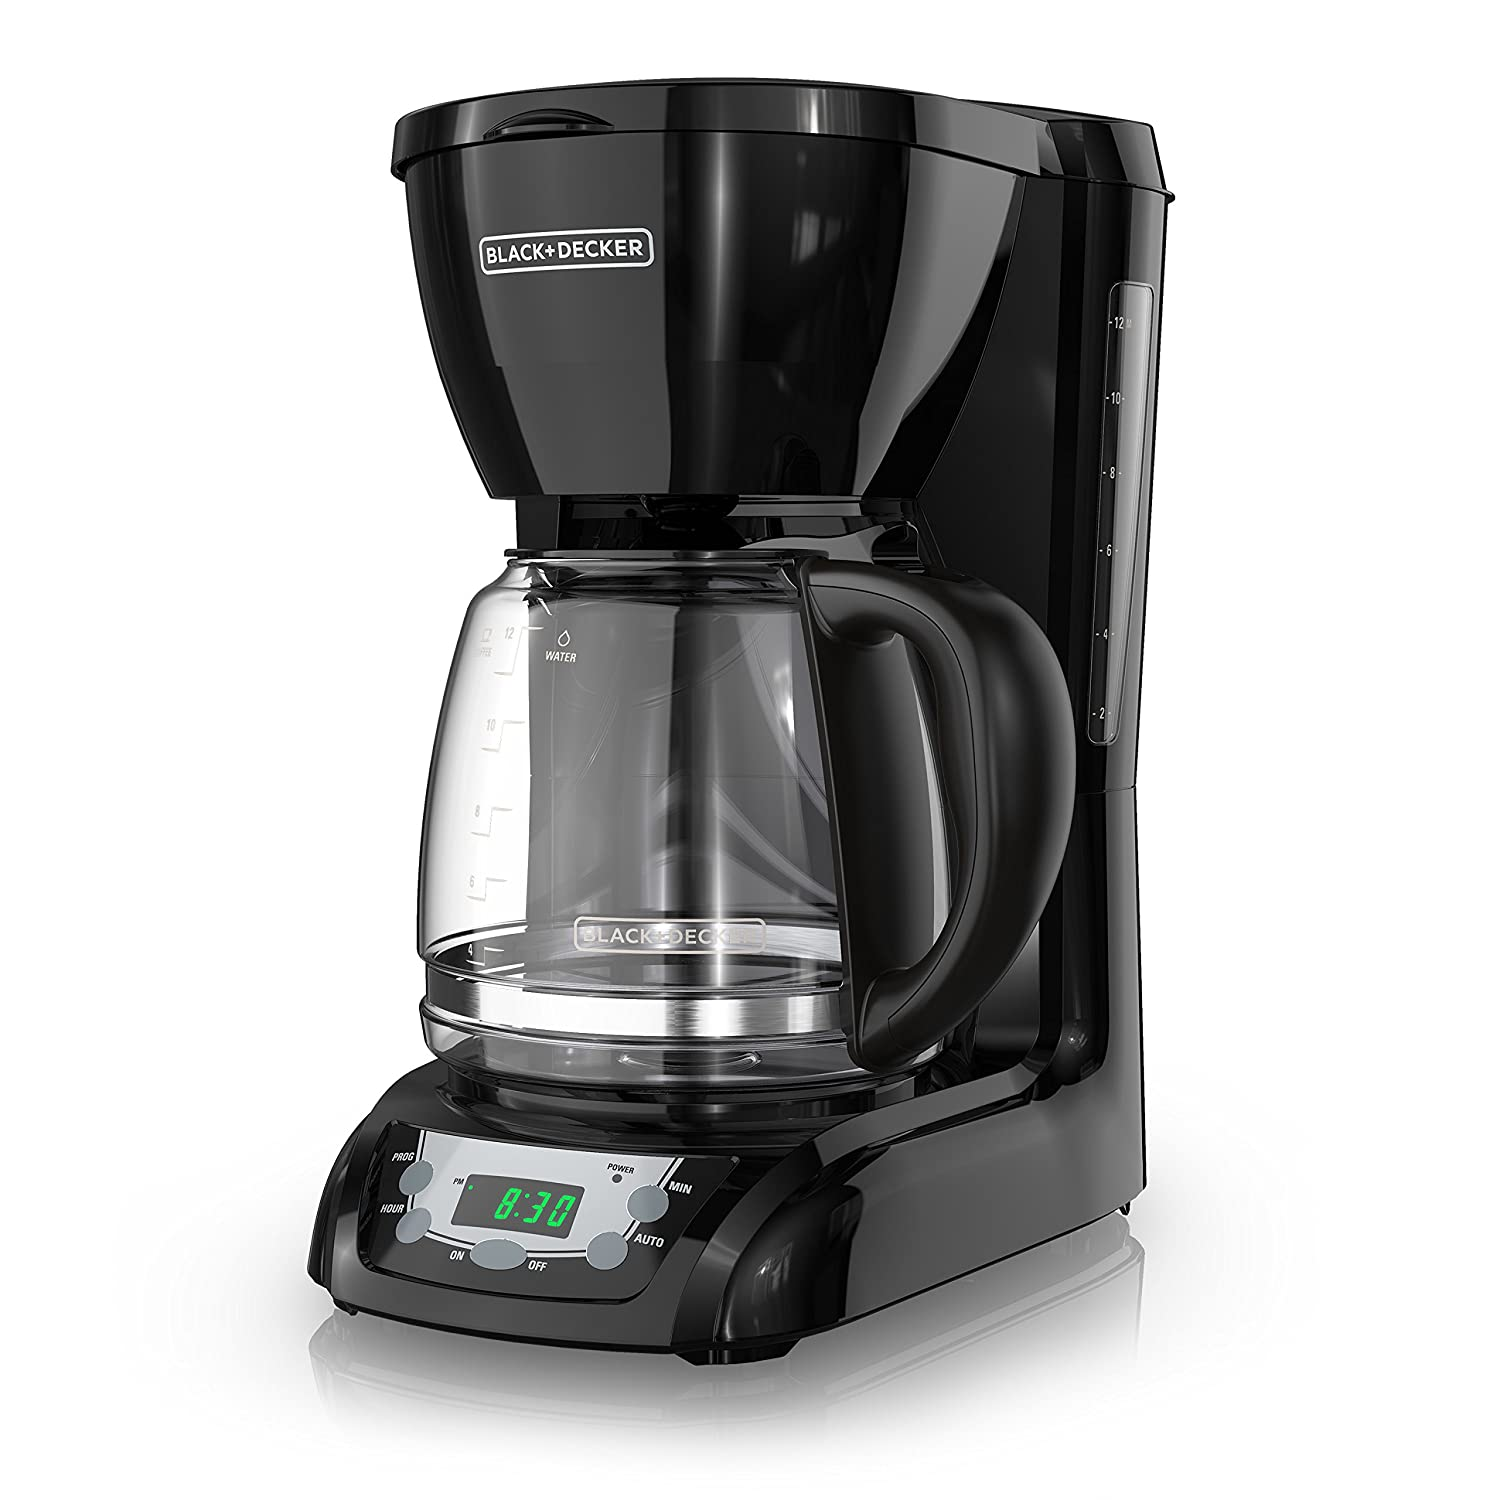 BLACK+DECKER DLX1050B Coffee Maker Black